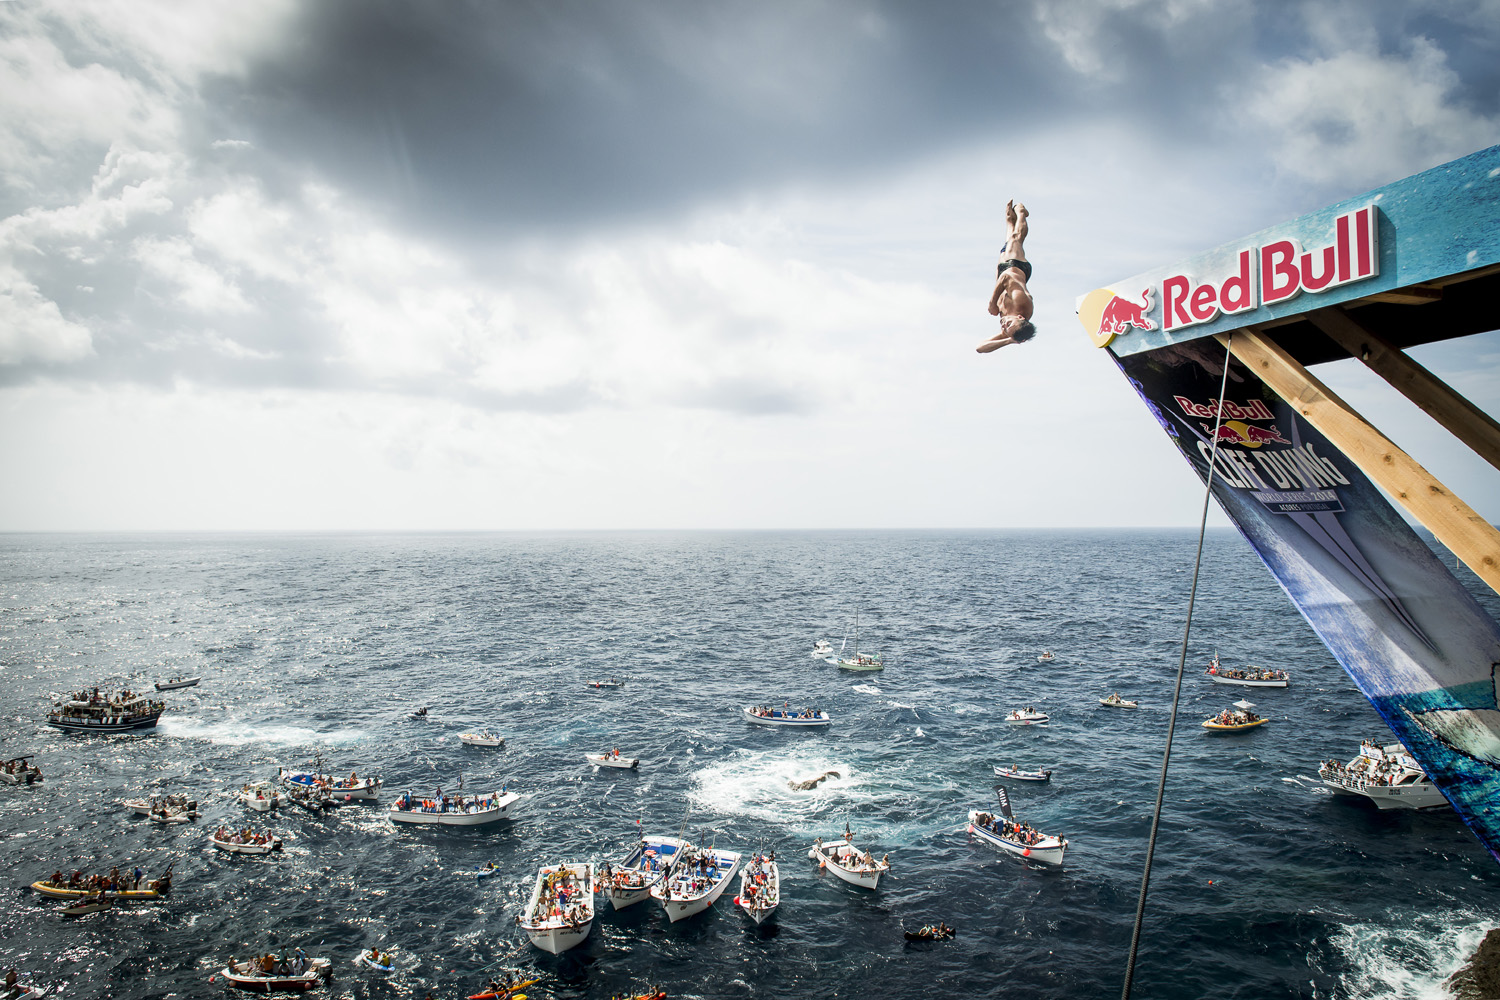 Blake Aldridge dives from the 27 metre platform on Islet Vila Franca do Campo during the fifth stop of the Red Bull Cliff Diving World Series, Azores, Portugal.